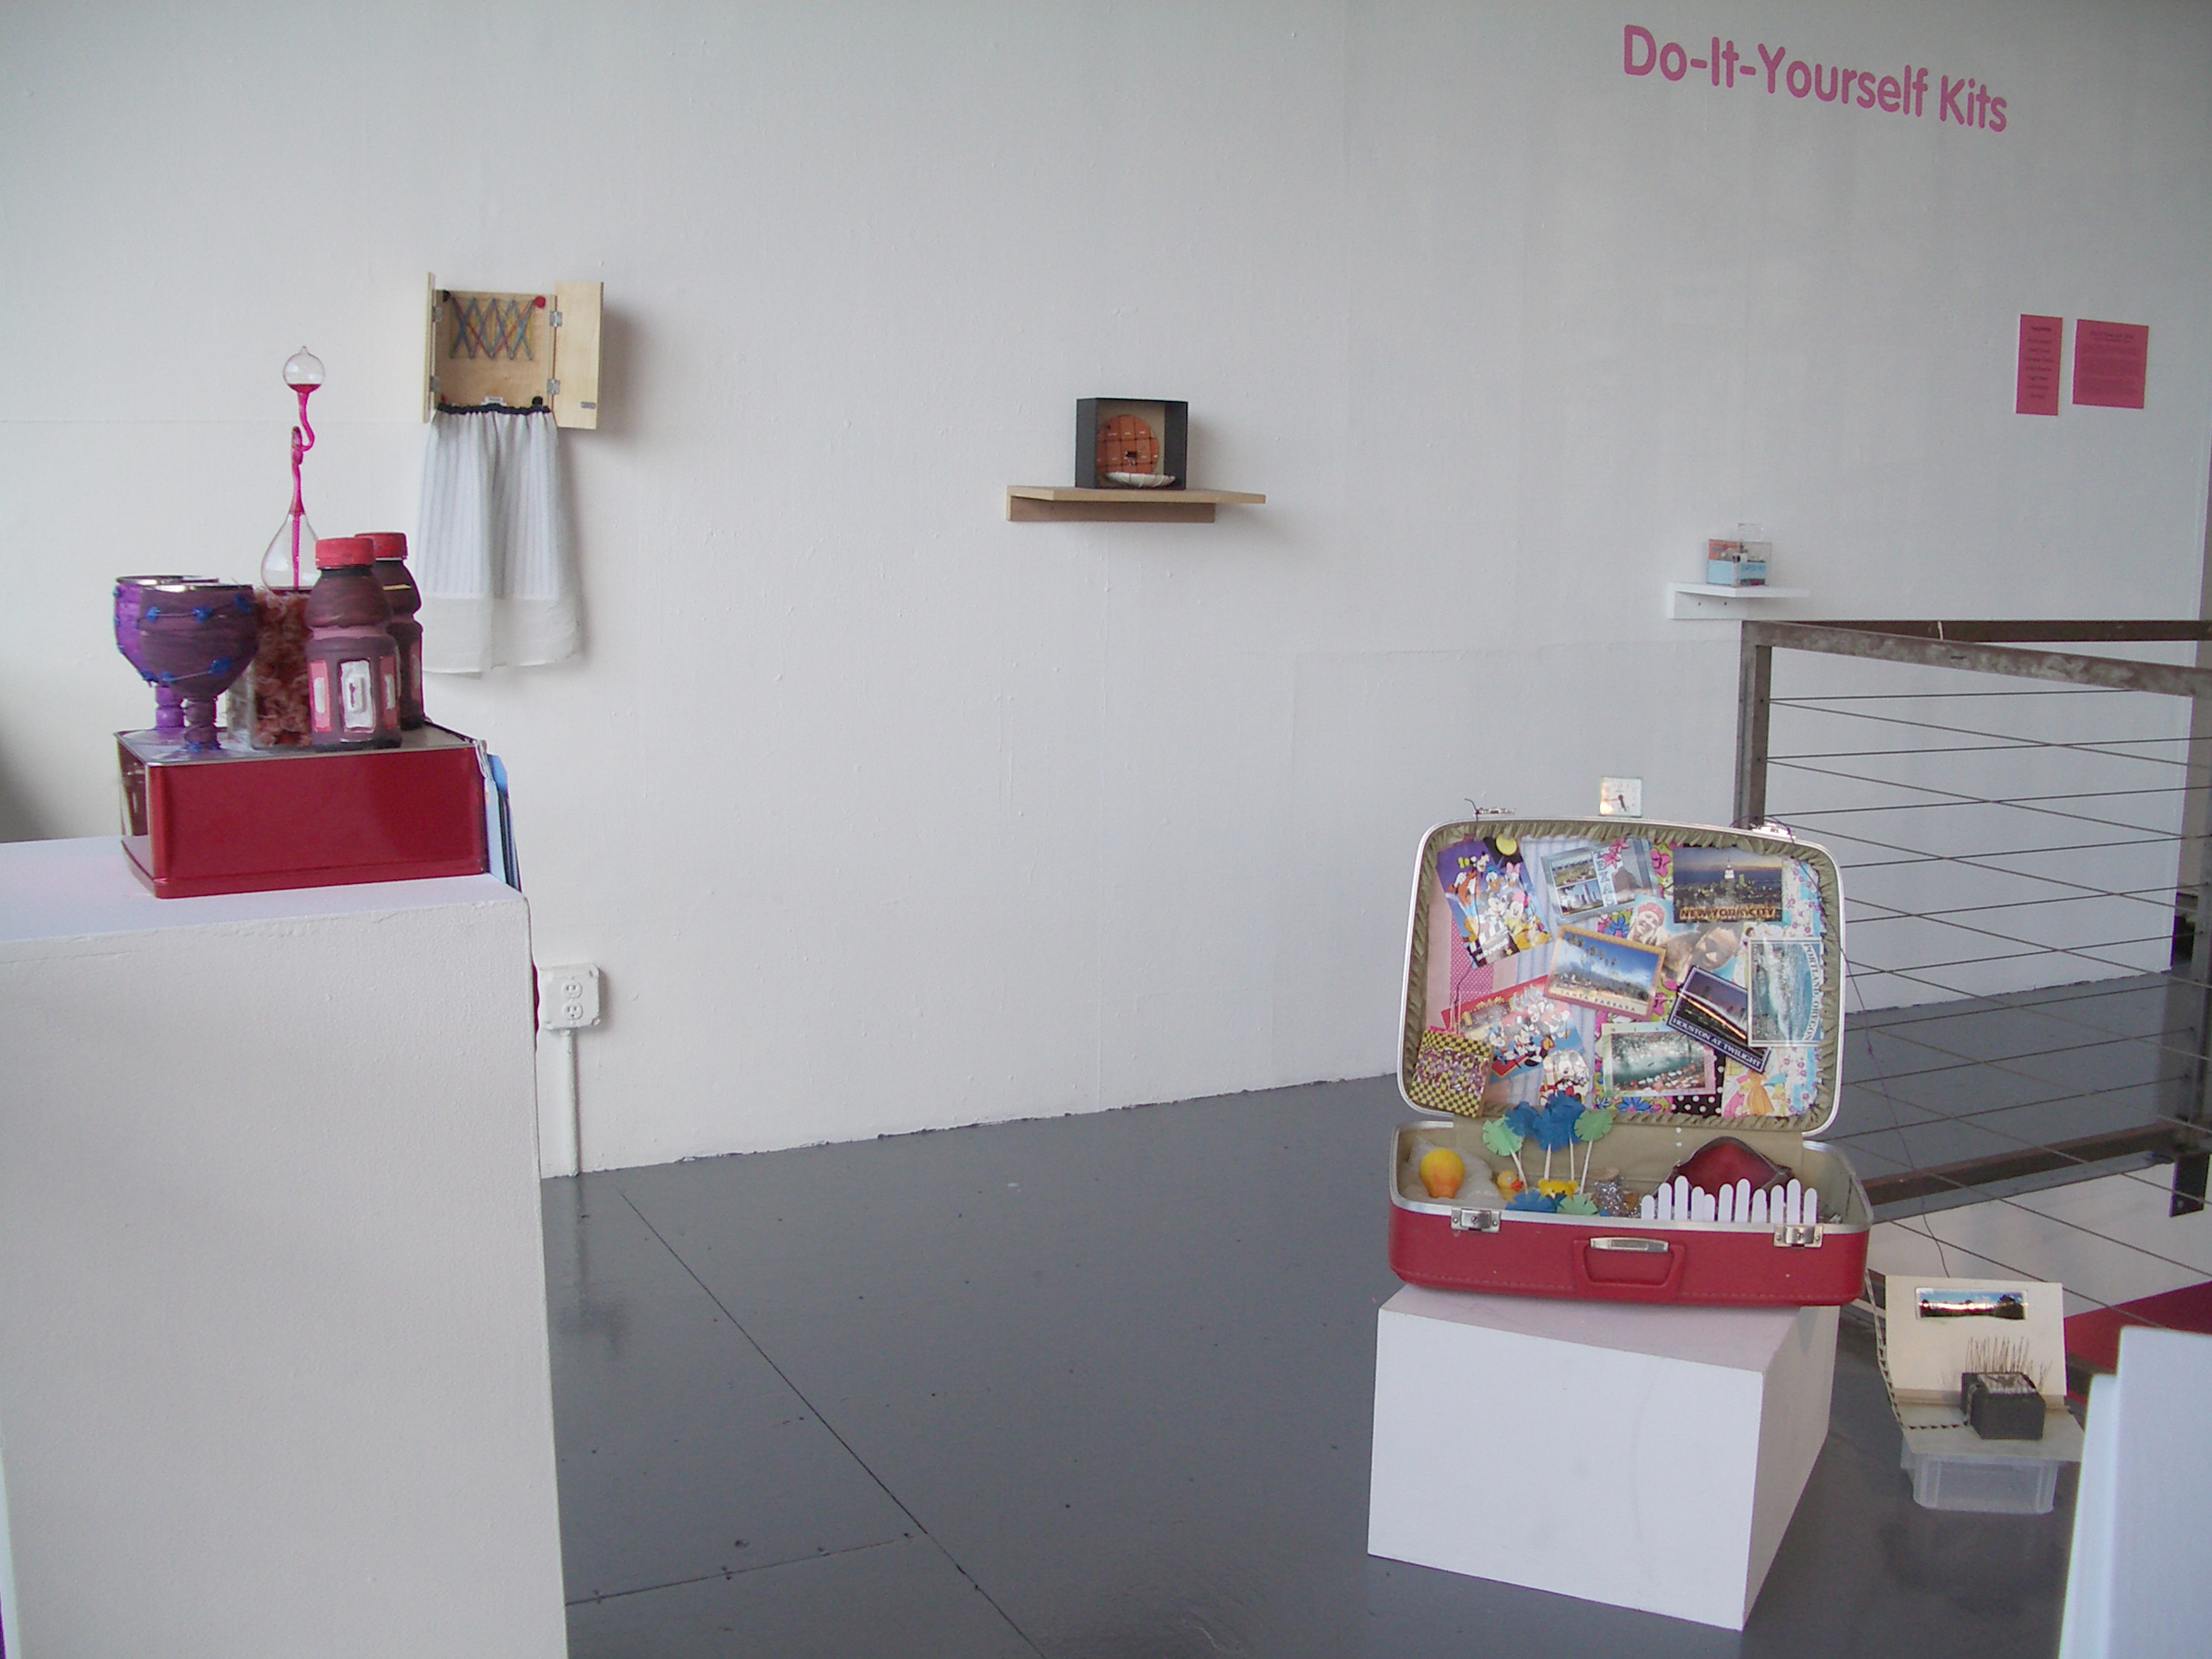 Do it yourself kits aie exhibition southern exposure do it yourself kits aie exhibition solutioingenieria Choice Image